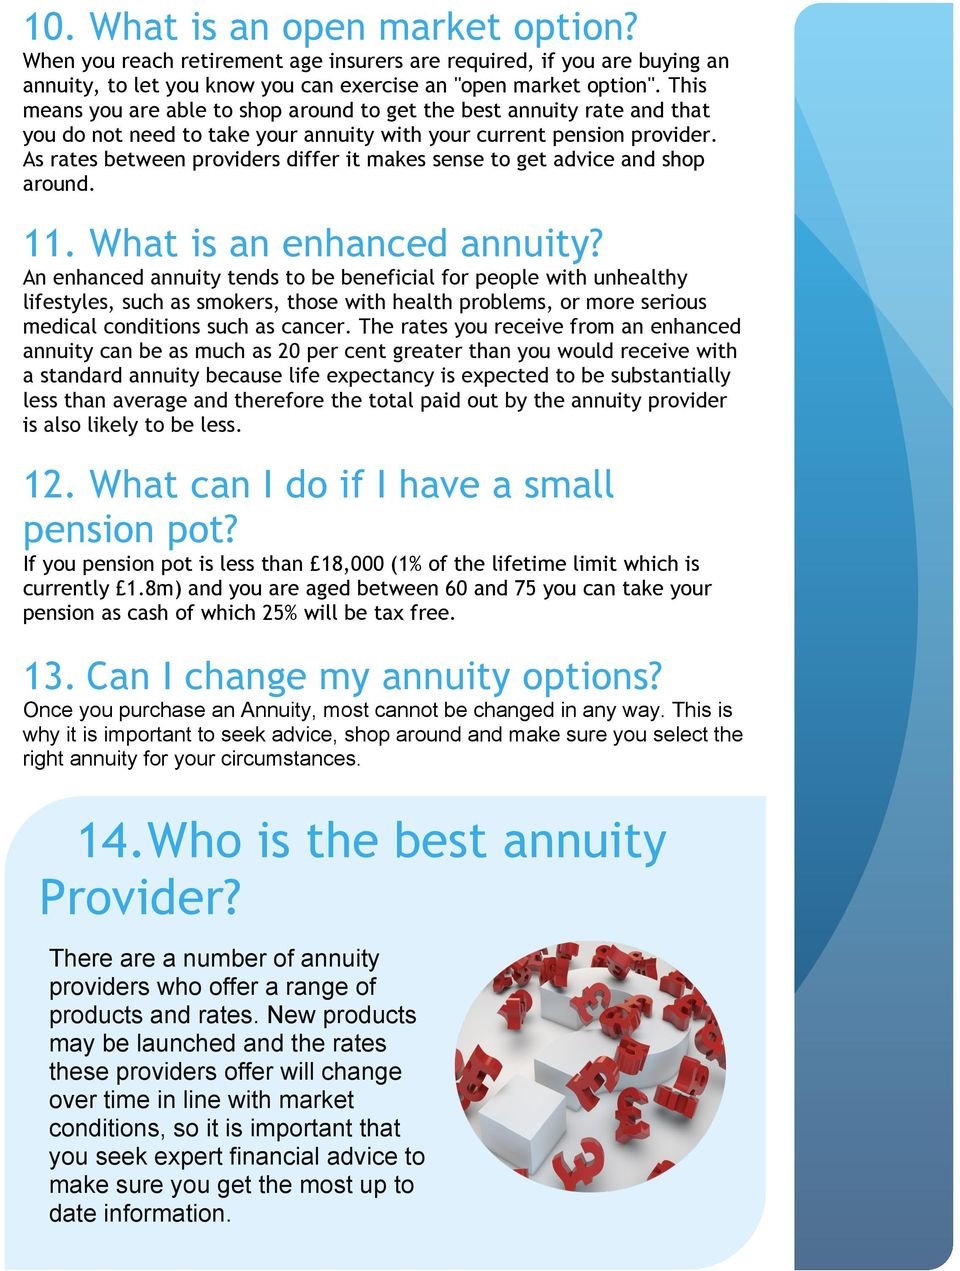 As rates between providers differ it makes sense to get advice and shop around. 11. What is an enhanced annuity?